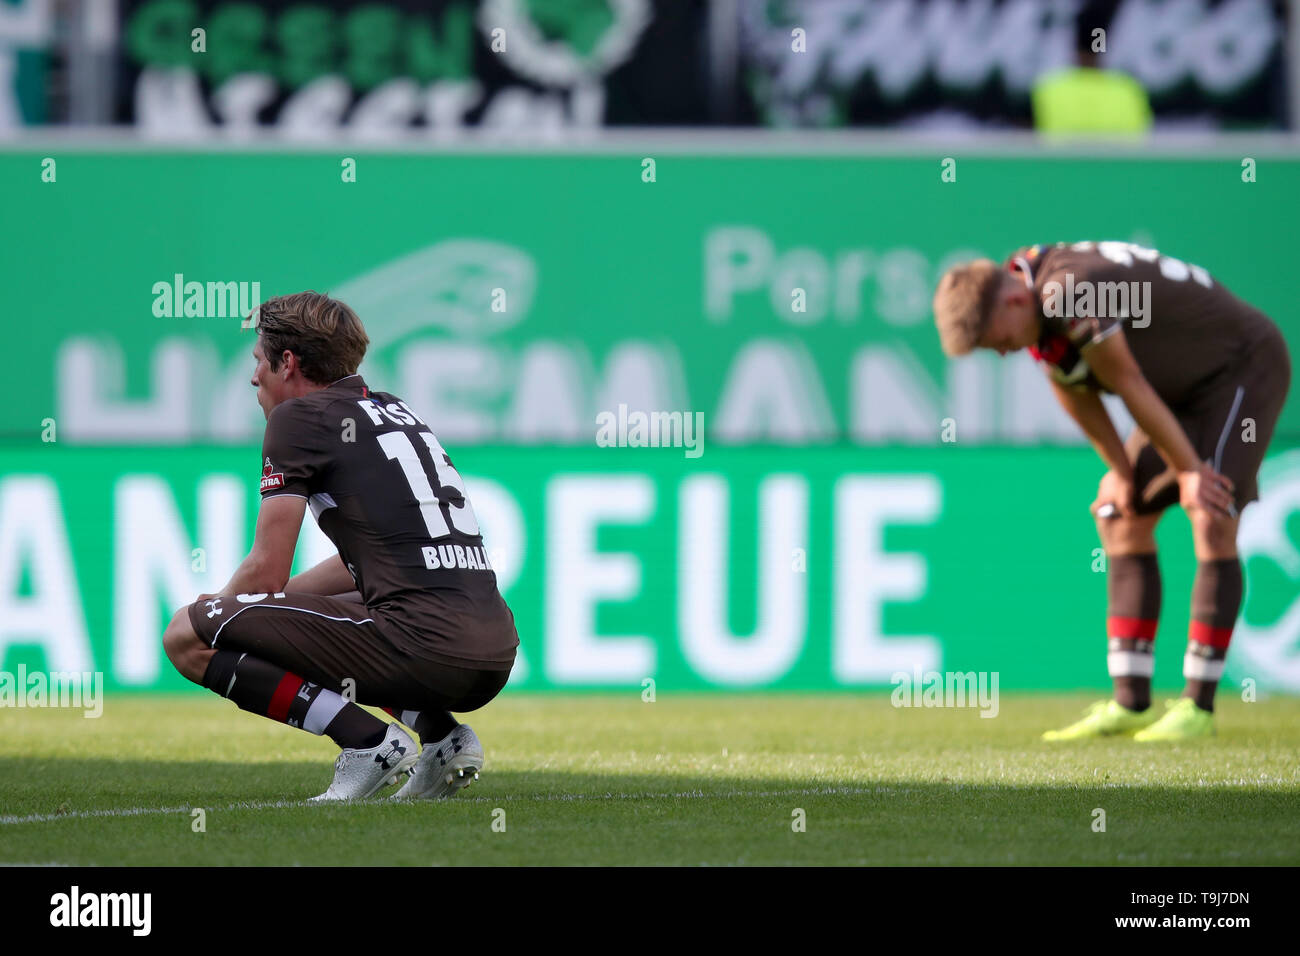 19 May 2019, Bavaria, Fürth: Soccer: 2nd Bundesliga, SpVgg Greuther Fürth - FC St. Pauli, 34th matchday, at the Sportpark Ronhof Thomas Sommer. Daniel Buballa (l) and Finn Ole Becker from FC St. Pauli stay on the pitch after the final whistle. Photo: Daniel Karmann/dpa - IMPORTANT NOTE: In accordance with the requirements of the DFL Deutsche Fußball Liga or the DFB Deutscher Fußball-Bund, it is prohibited to use or have used photographs taken in the stadium and/or the match in the form of sequence images and/or video-like photo sequences. - Stock Image